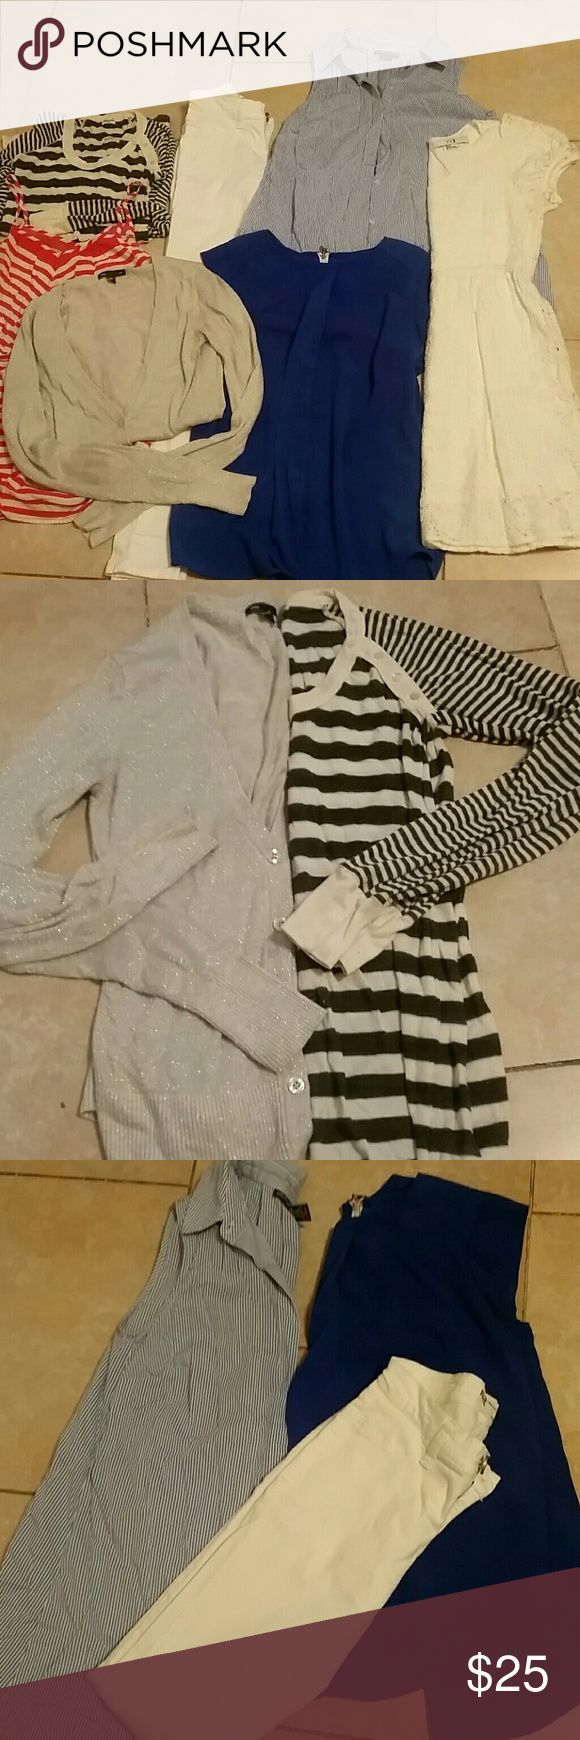 Lot of woman clothes small to extra small Super cute lot. Mix and match clothes. Clean and fashionable. Romper, white lace short dress, white pants xs size, blur sleeveless top, blue stripe top, stripped  top with sleeves  and  silver cardigan  from gap. GAP Other